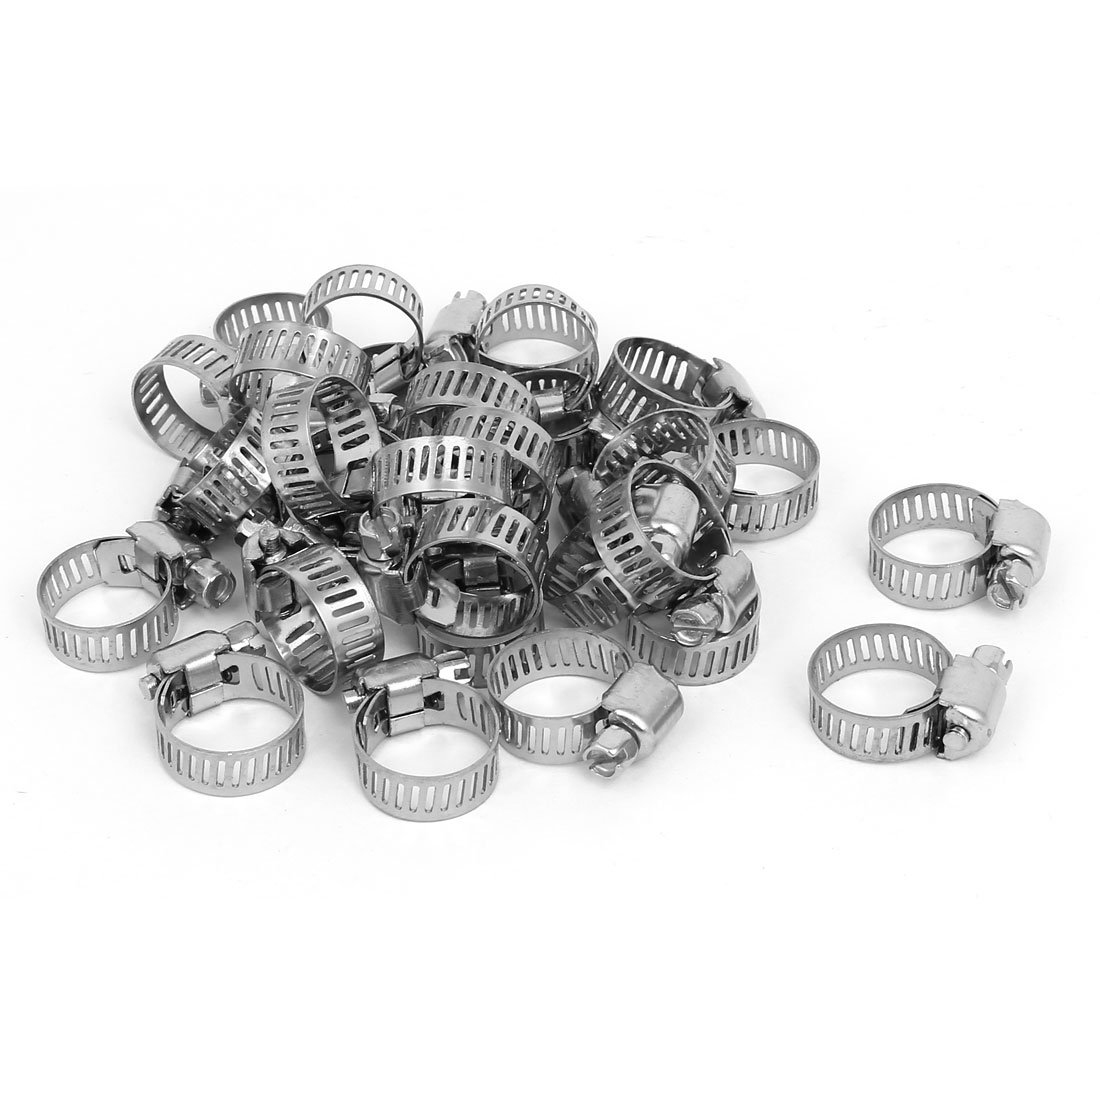 uxcell 13-19mm Stainless Steel Adjustable Cable Tight Worm Gear Hose Clamps 30pcs